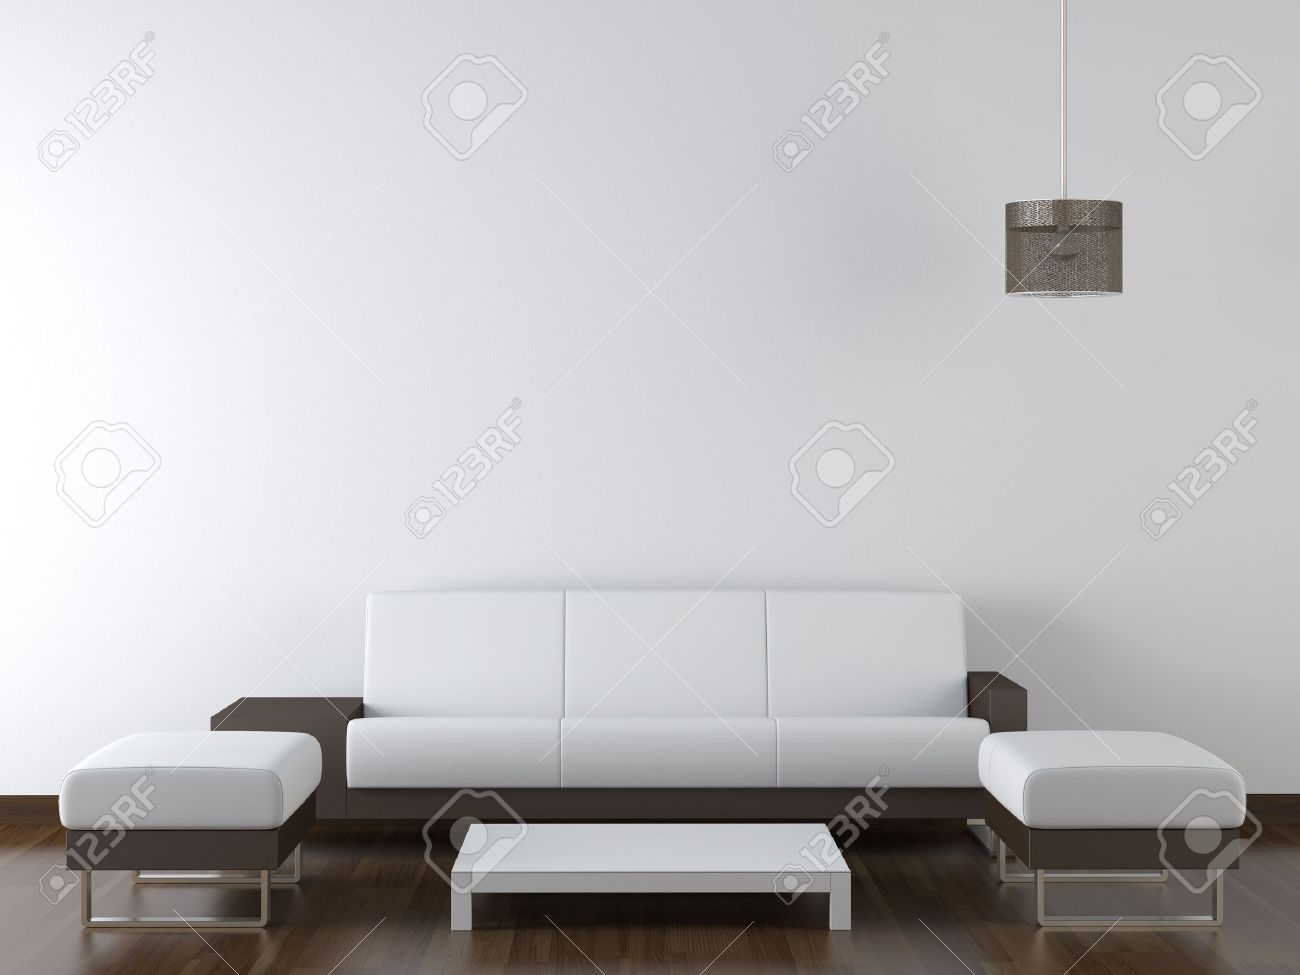 Wohnzimmer Design Braun Stock Photo